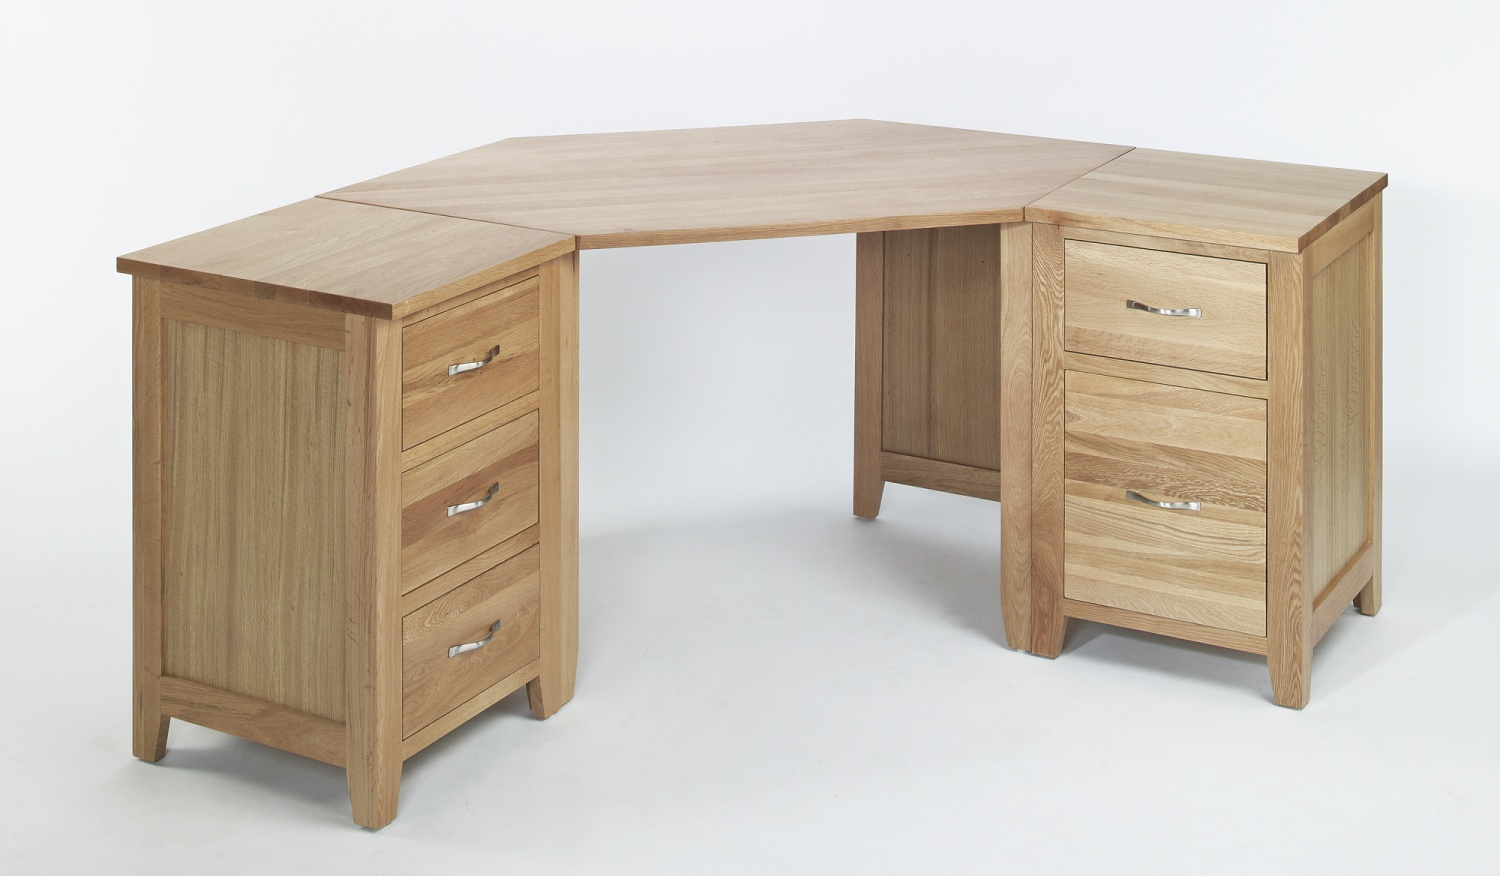 Compton Solid Oak Furniture Corner Office PC Computer Desk EBay